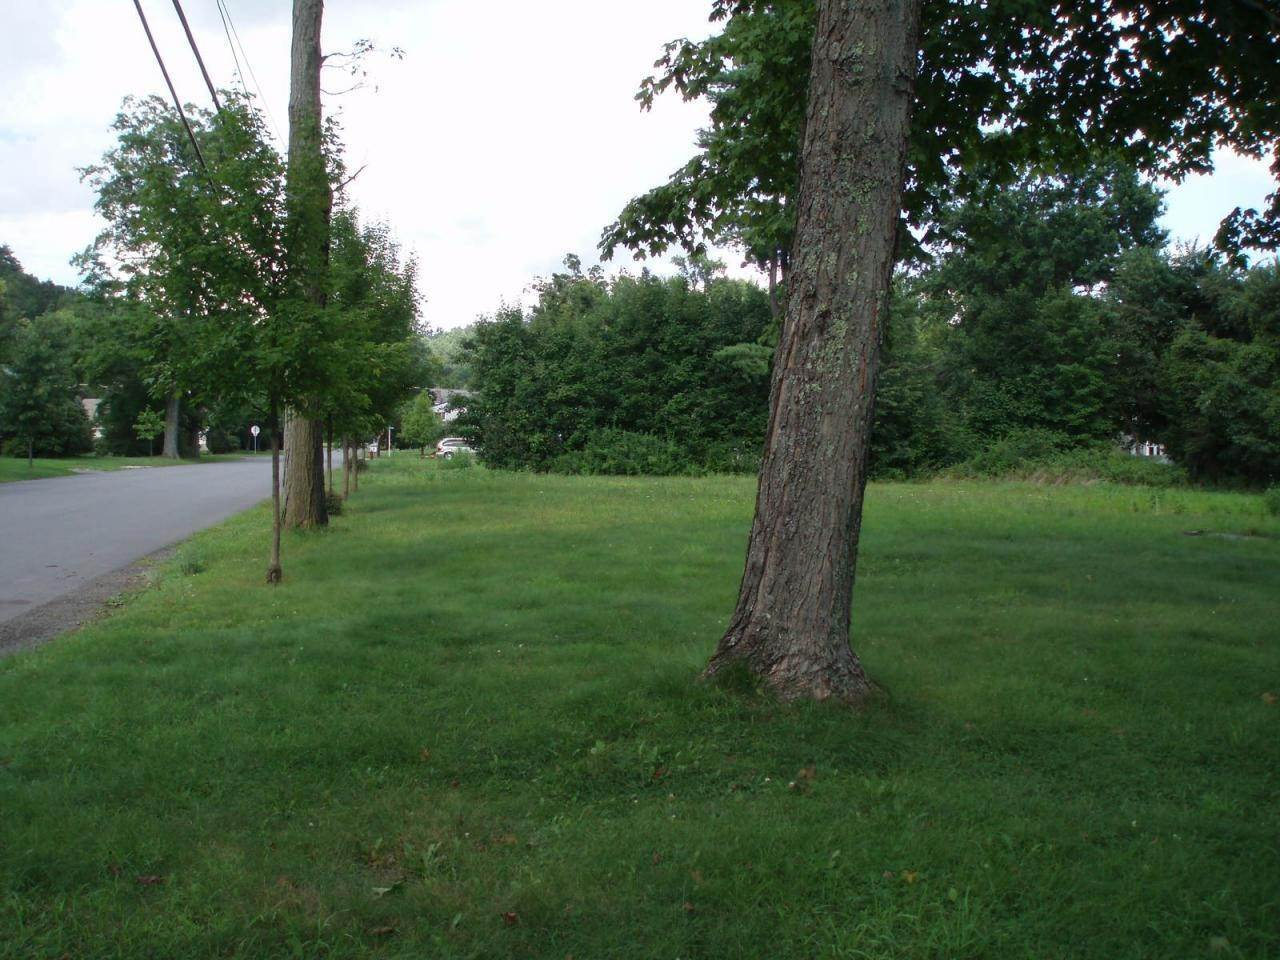 Land for Sale at Lot 600 W High St Milford Borough, Pennsylvania 18337 United States